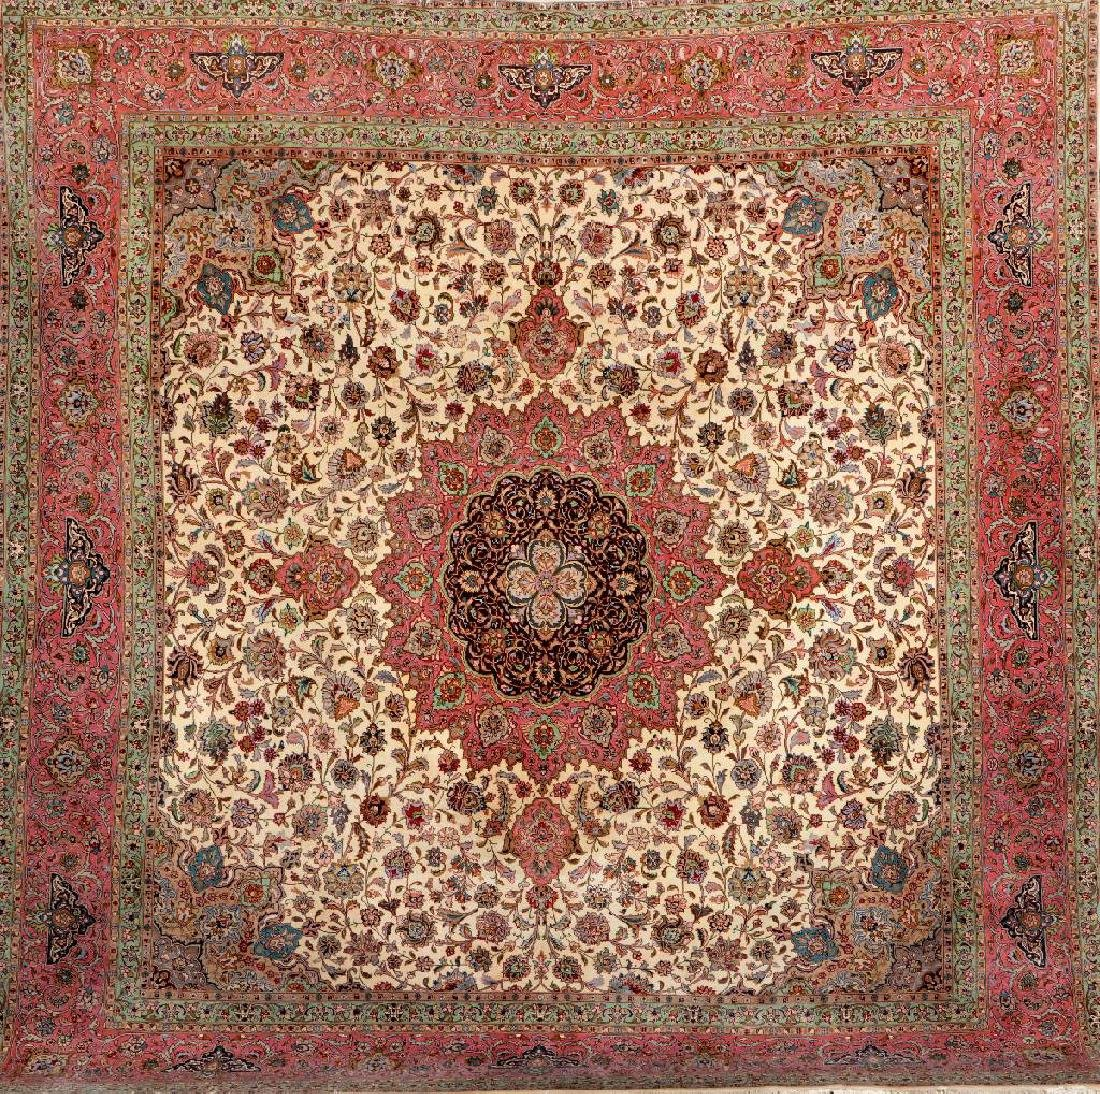 Tabriz 'Part-Silk' Carpet (50 RAJ),